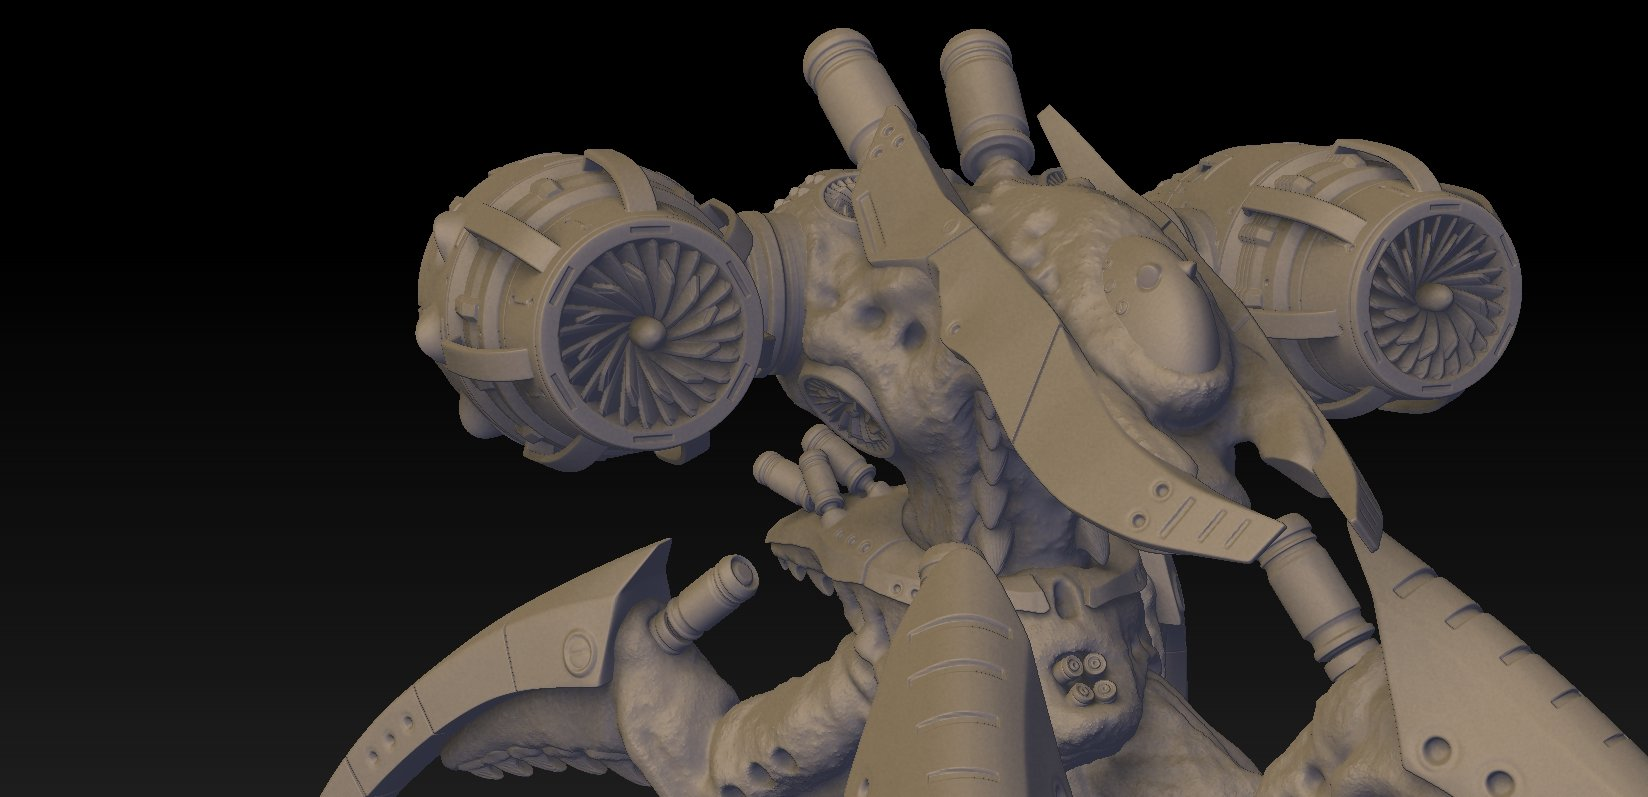 Thomas woodward zbrush document16